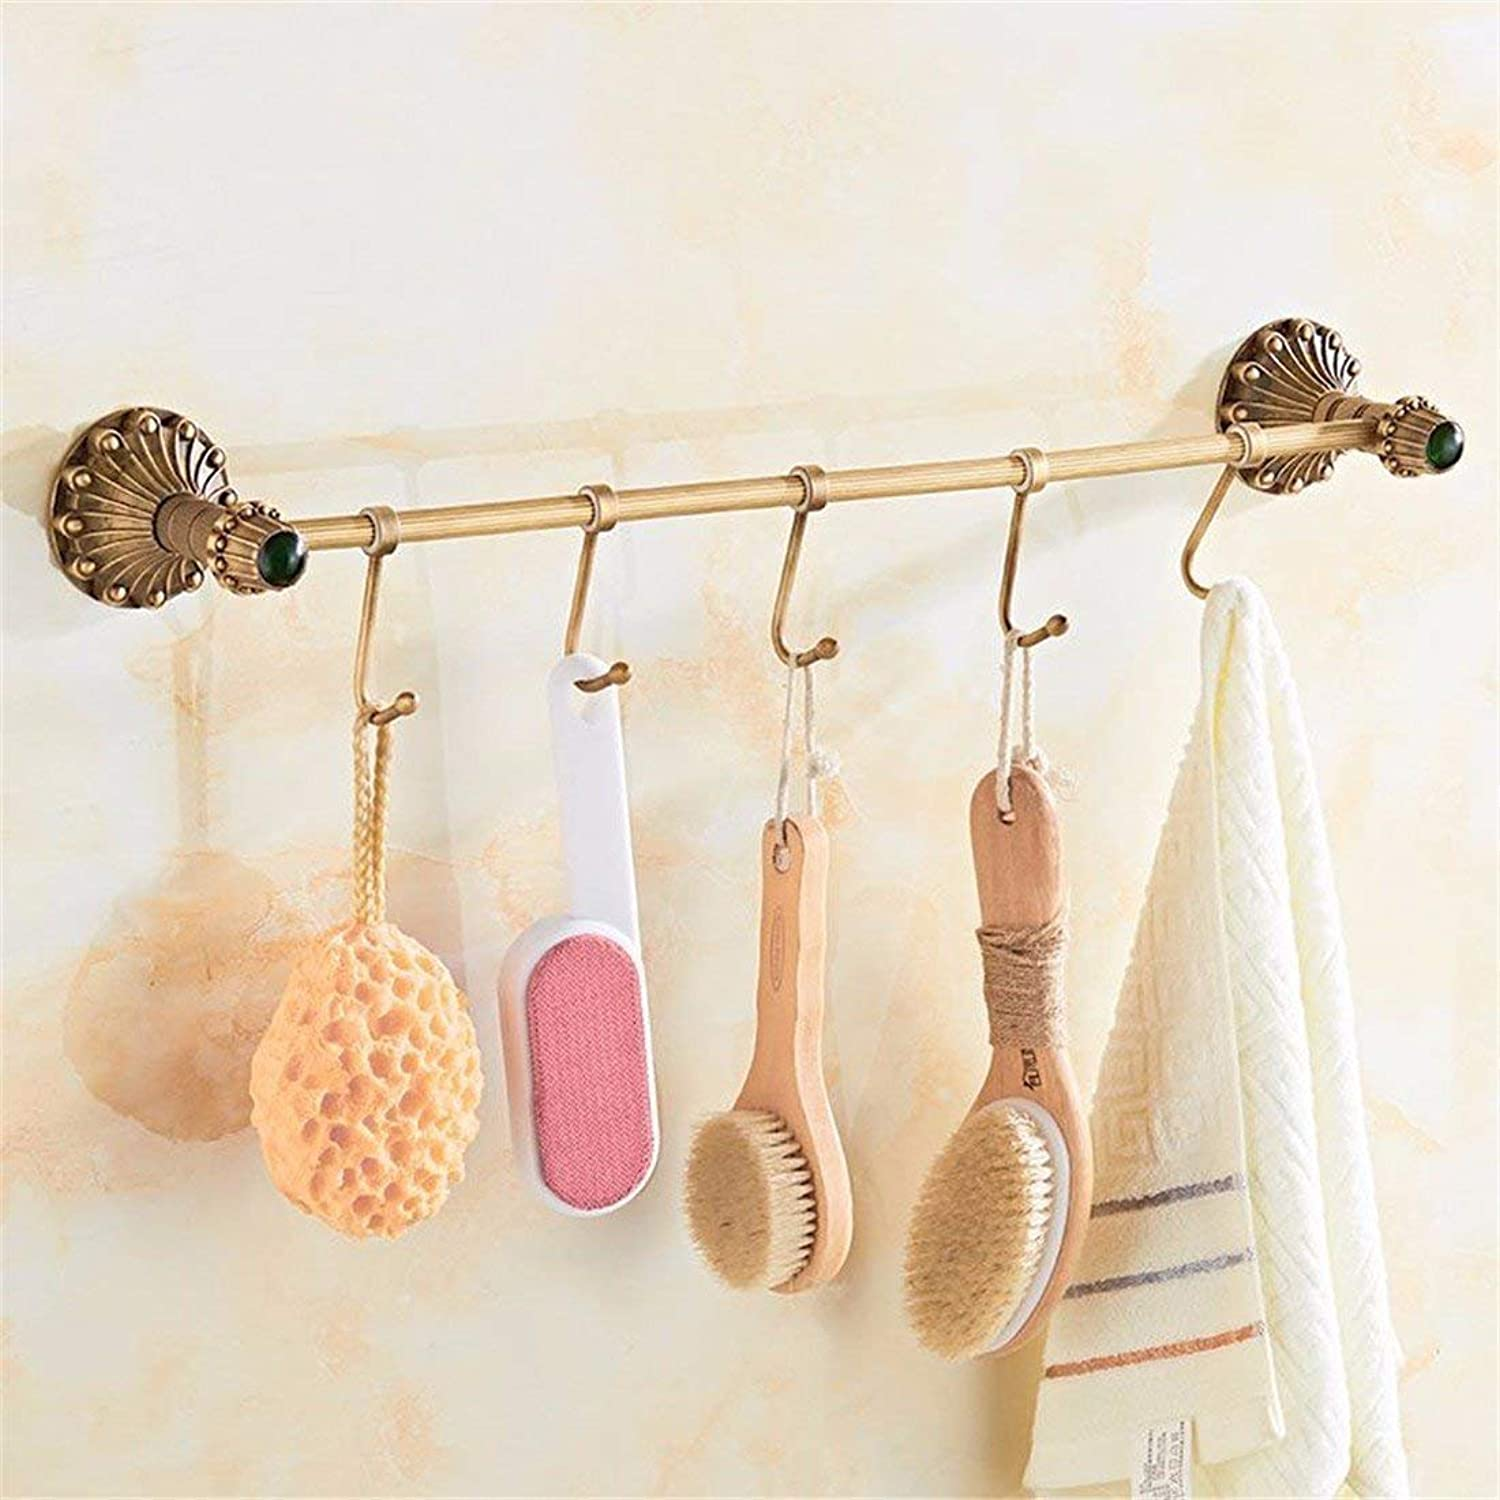 European Green Retro Pendentif Antique Copper Bathroom Dry-Towels,Game of Simple Rod Rack